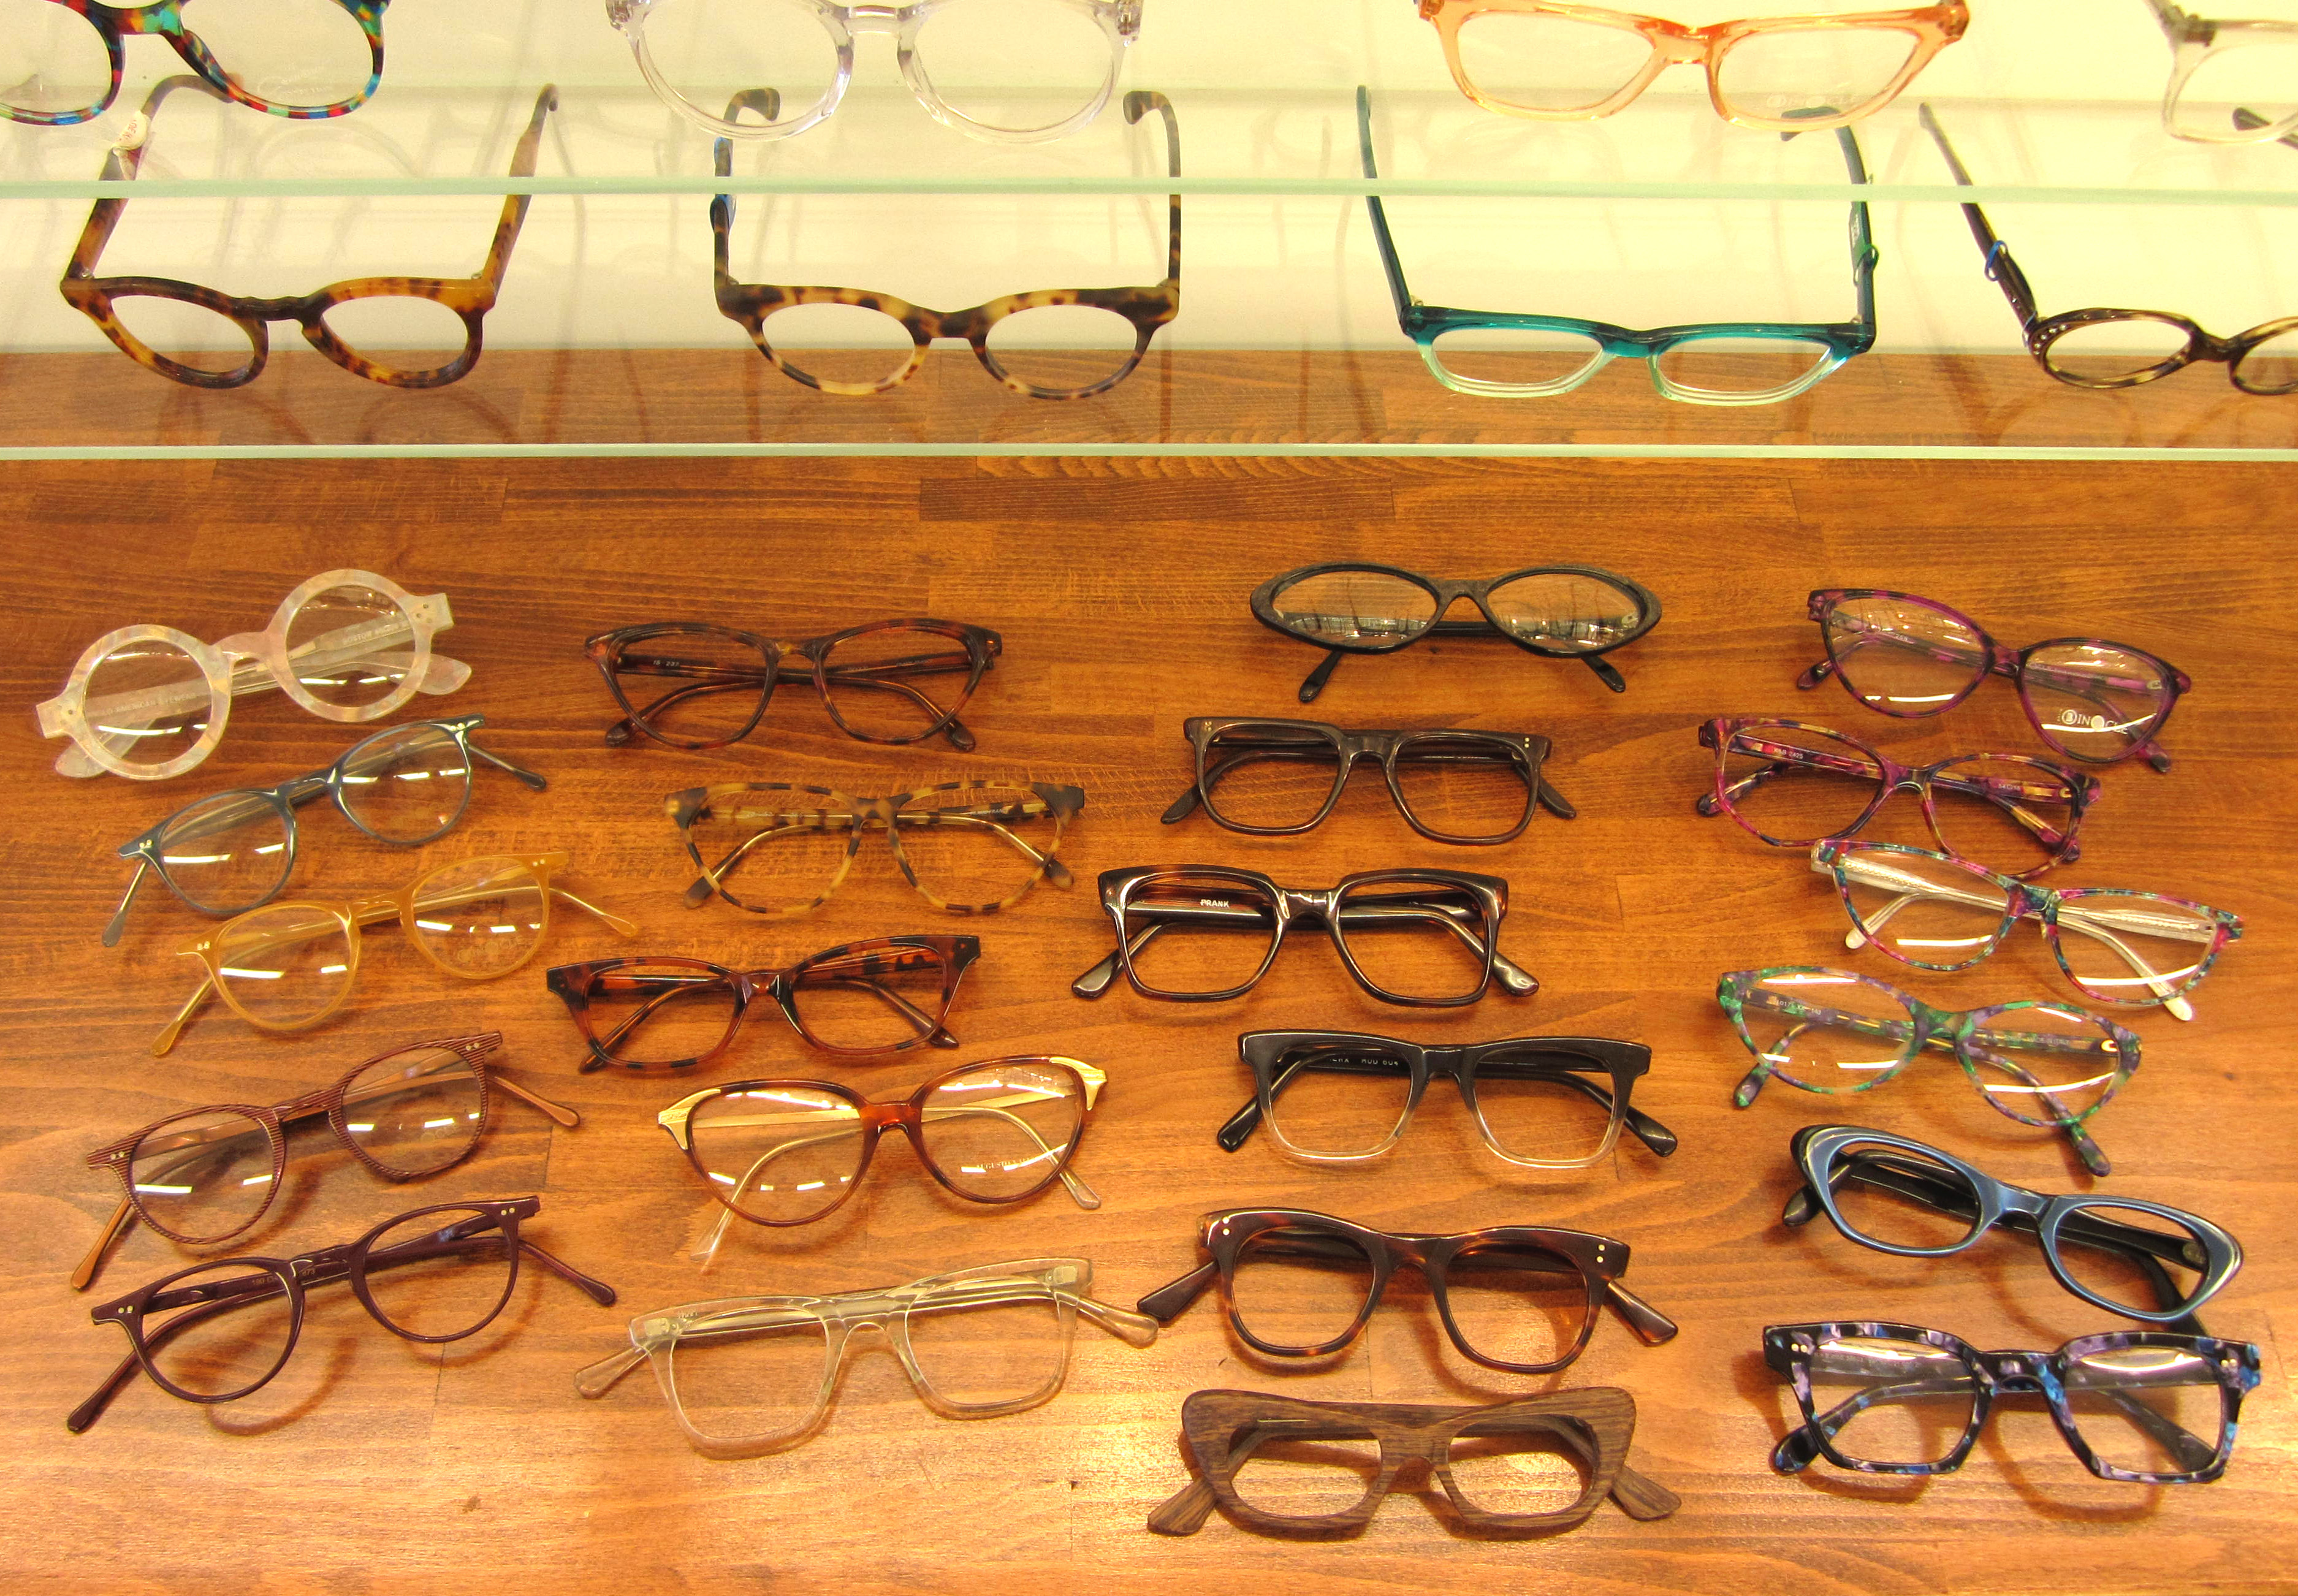 7514aefb4d Jordan Paul (owner of the shop) just got back from a trip to Europe where  he brought back some fabulous frames dating back to the 50s and 60s. We ve  got new ...